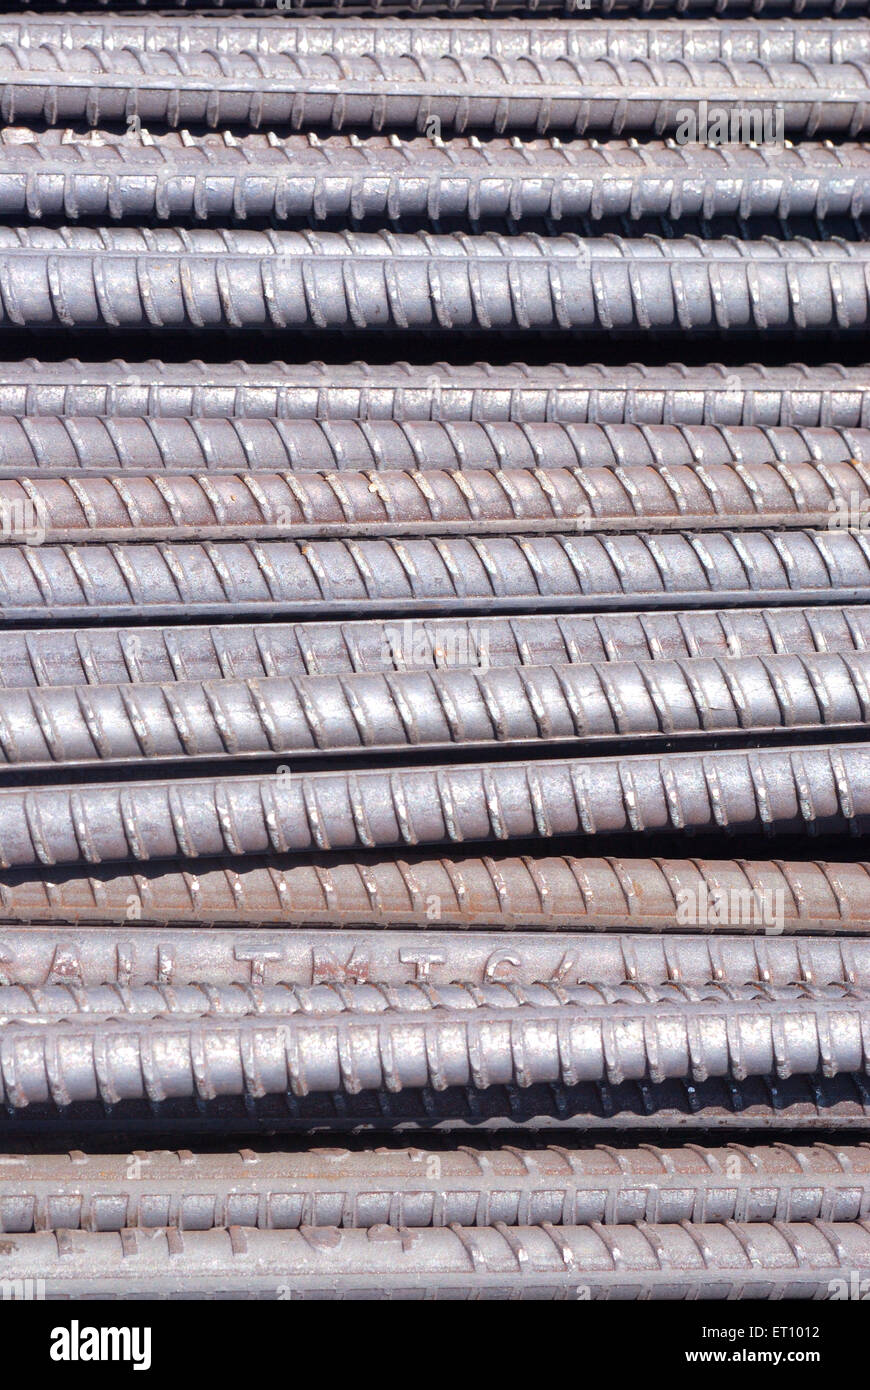 Steel bars - Stock Image